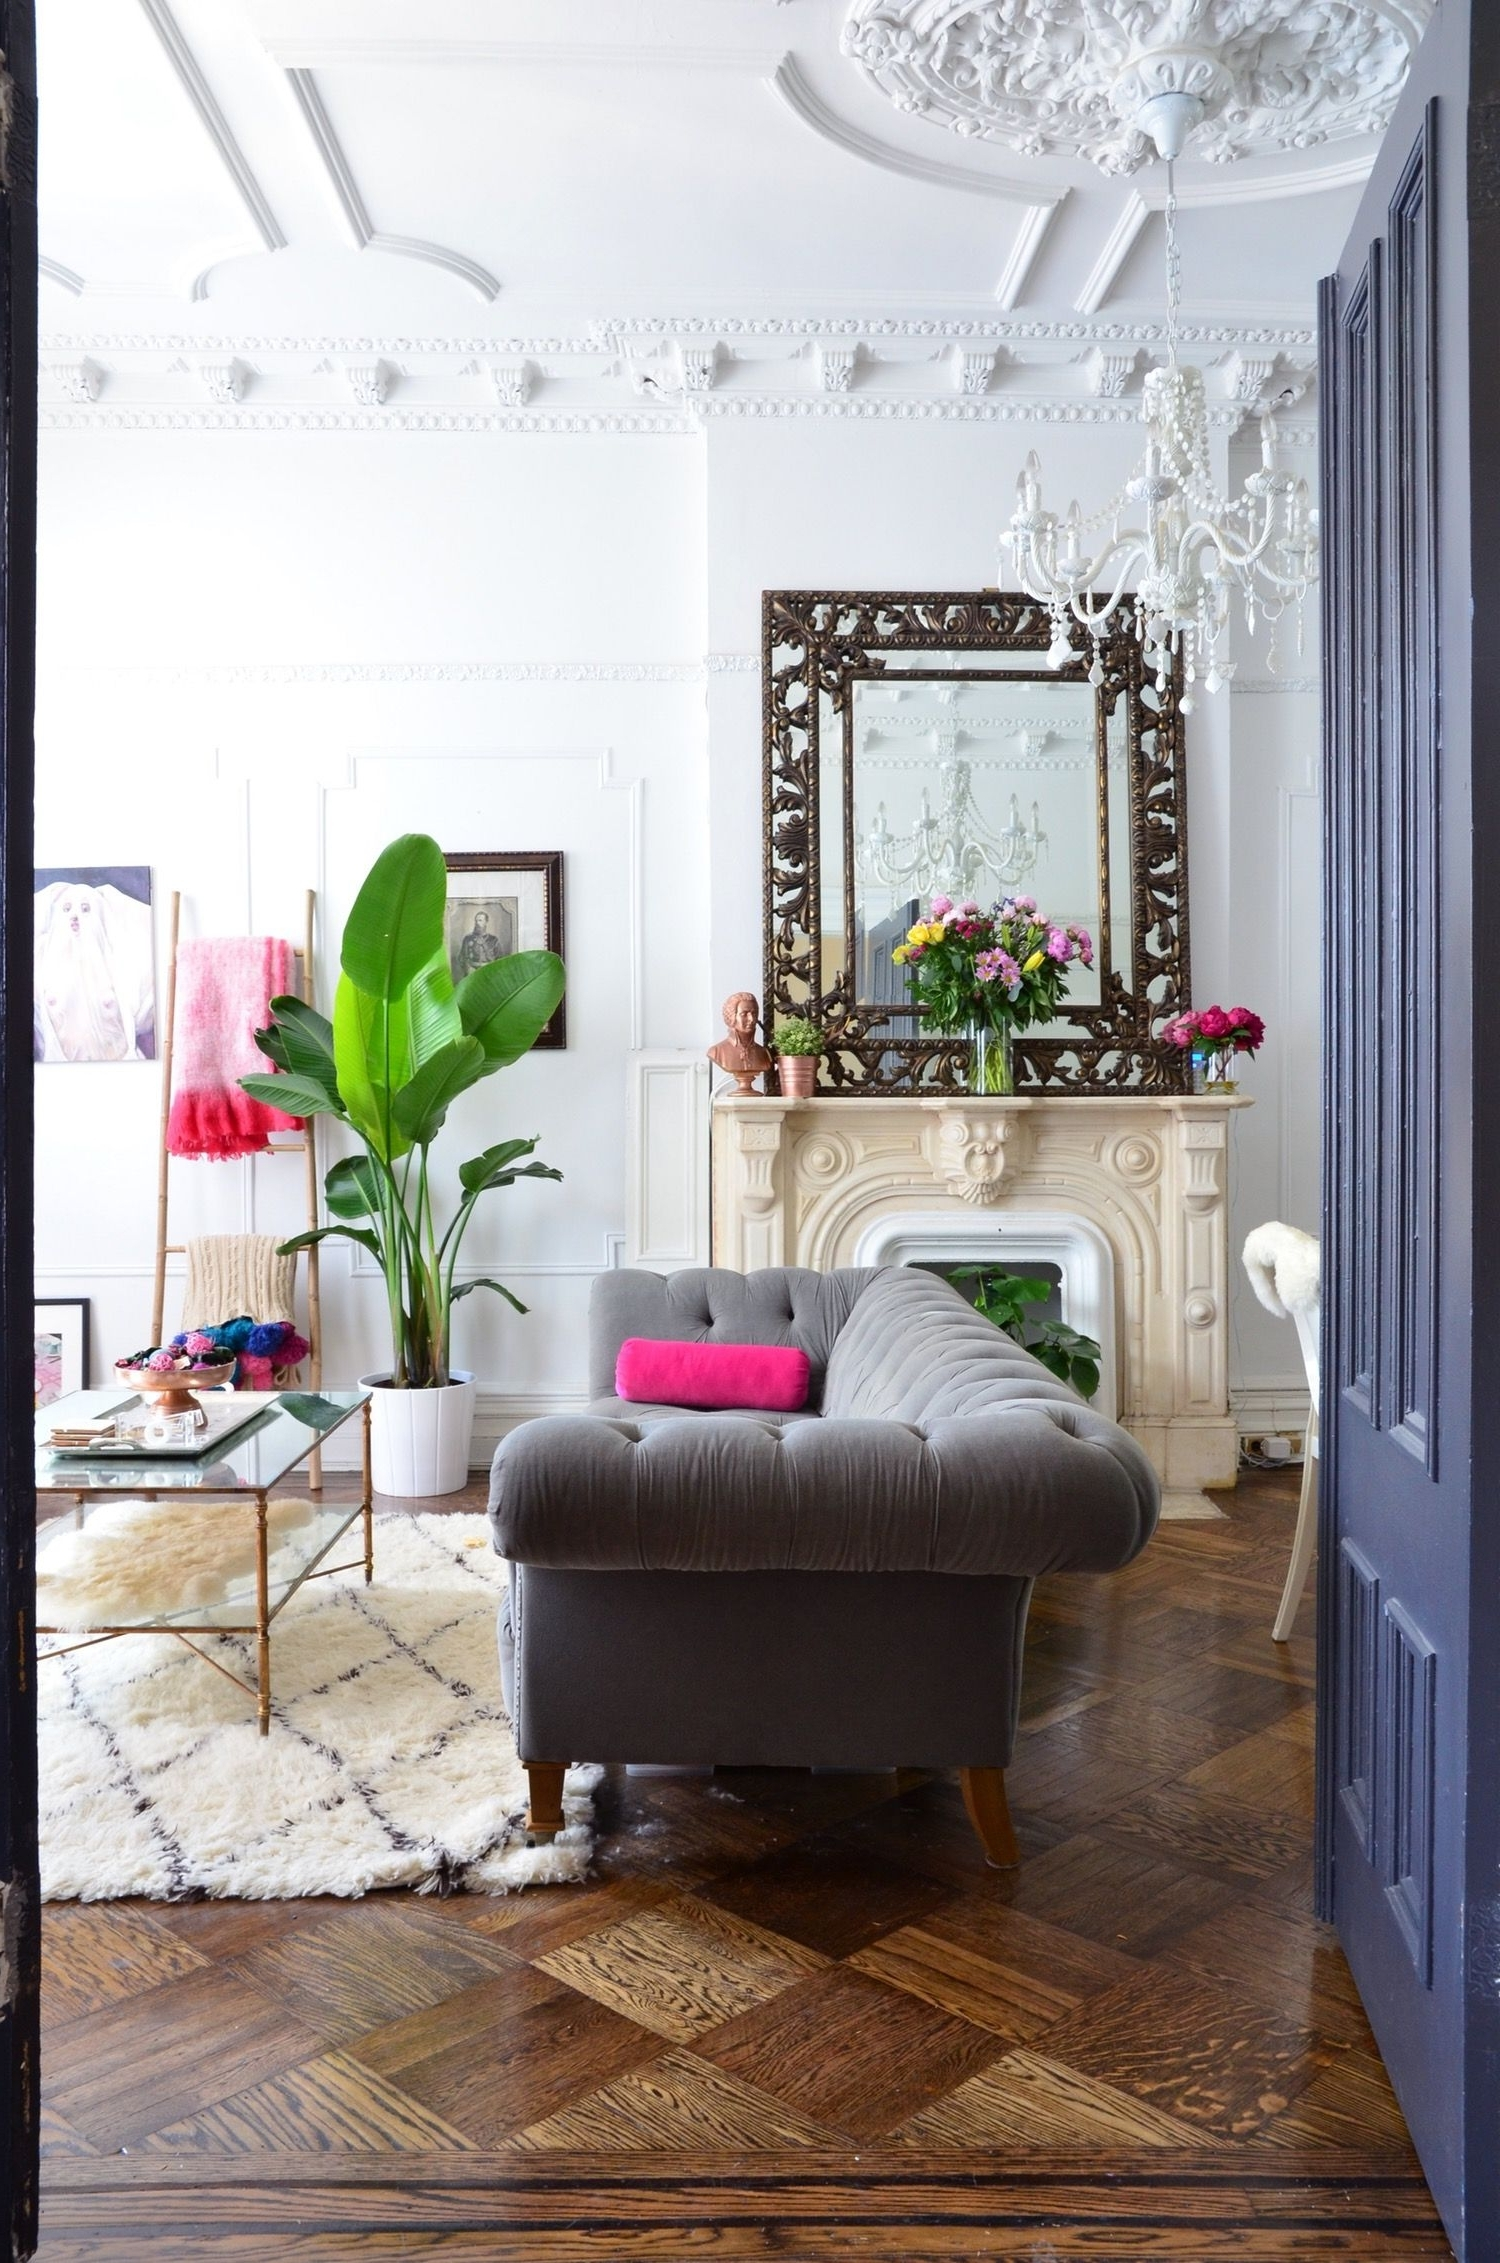 Dramatic Decor In A Traditional Brooklyn Brownstone 30+ Brownstone Living Room Decorating Inspirations